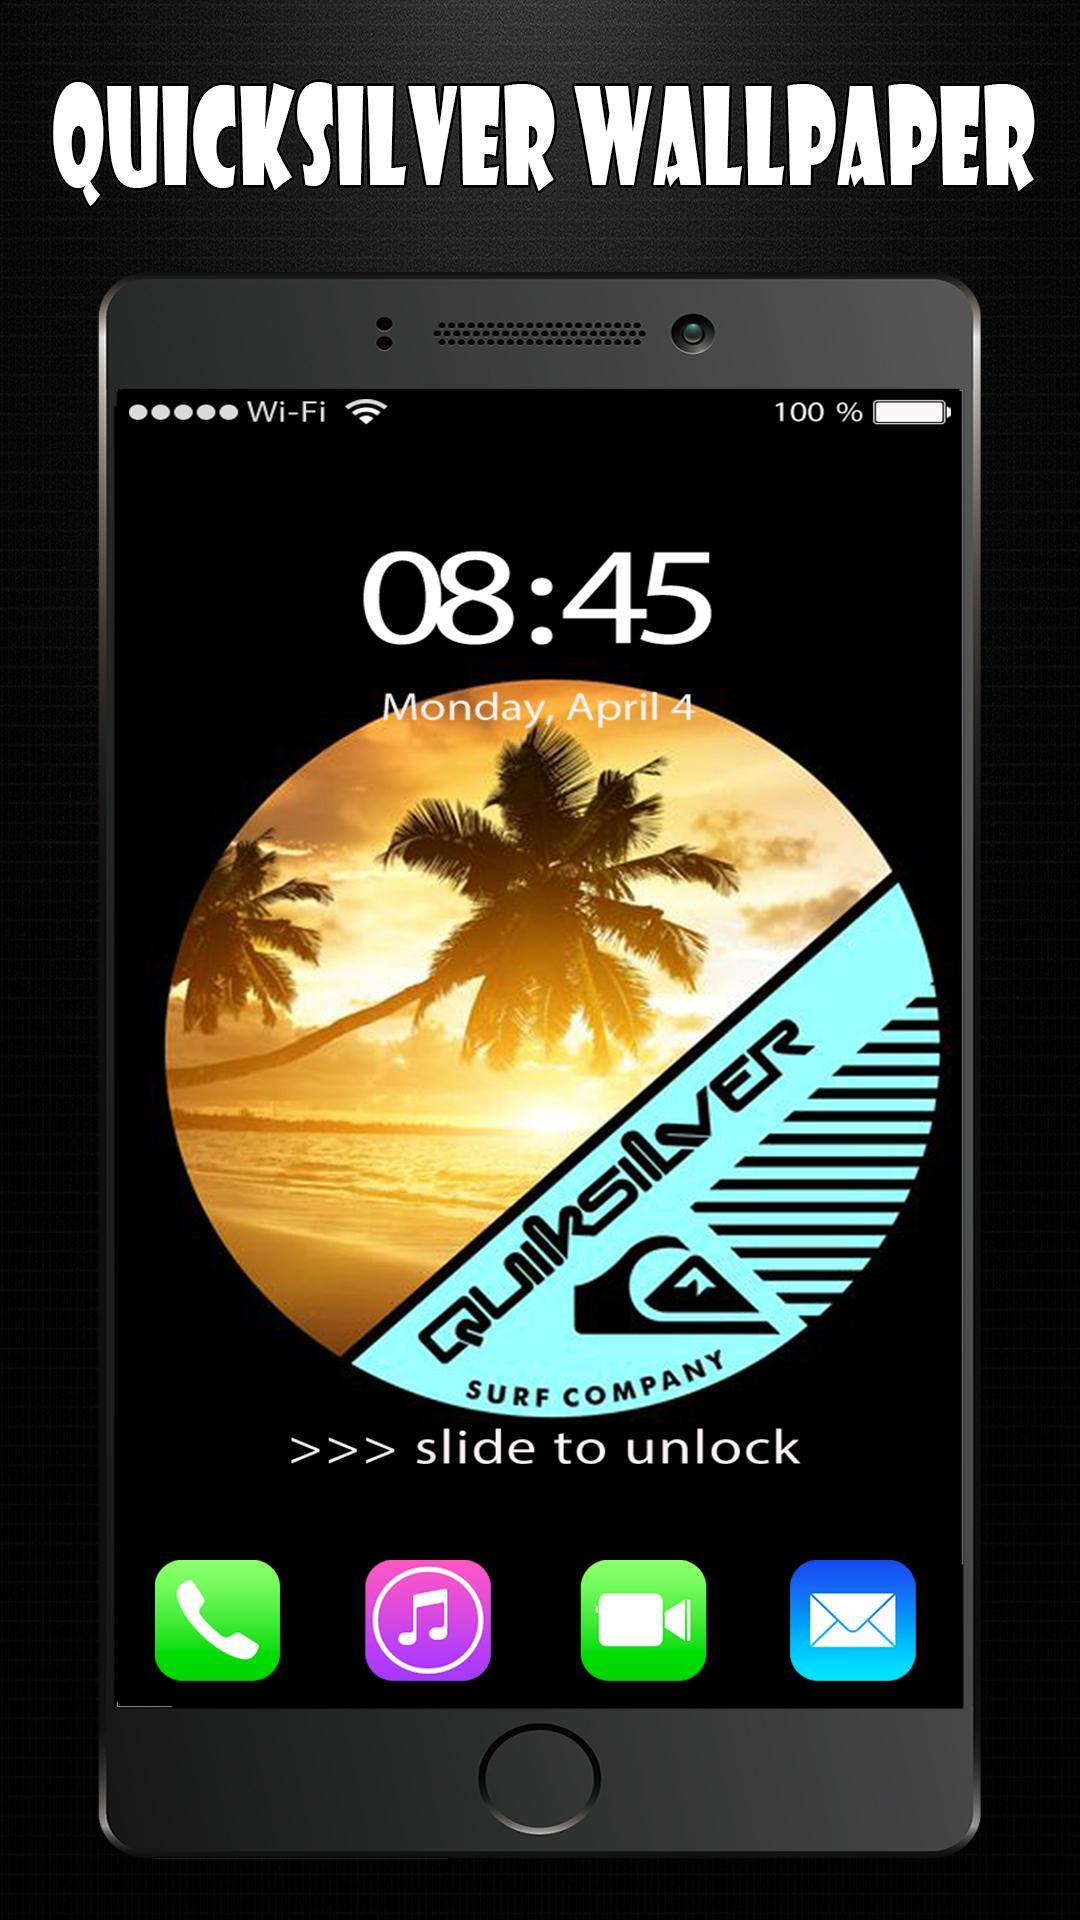 Unduh 8600 Koleksi Wallpaper Iphone Quiksilver Terbaik